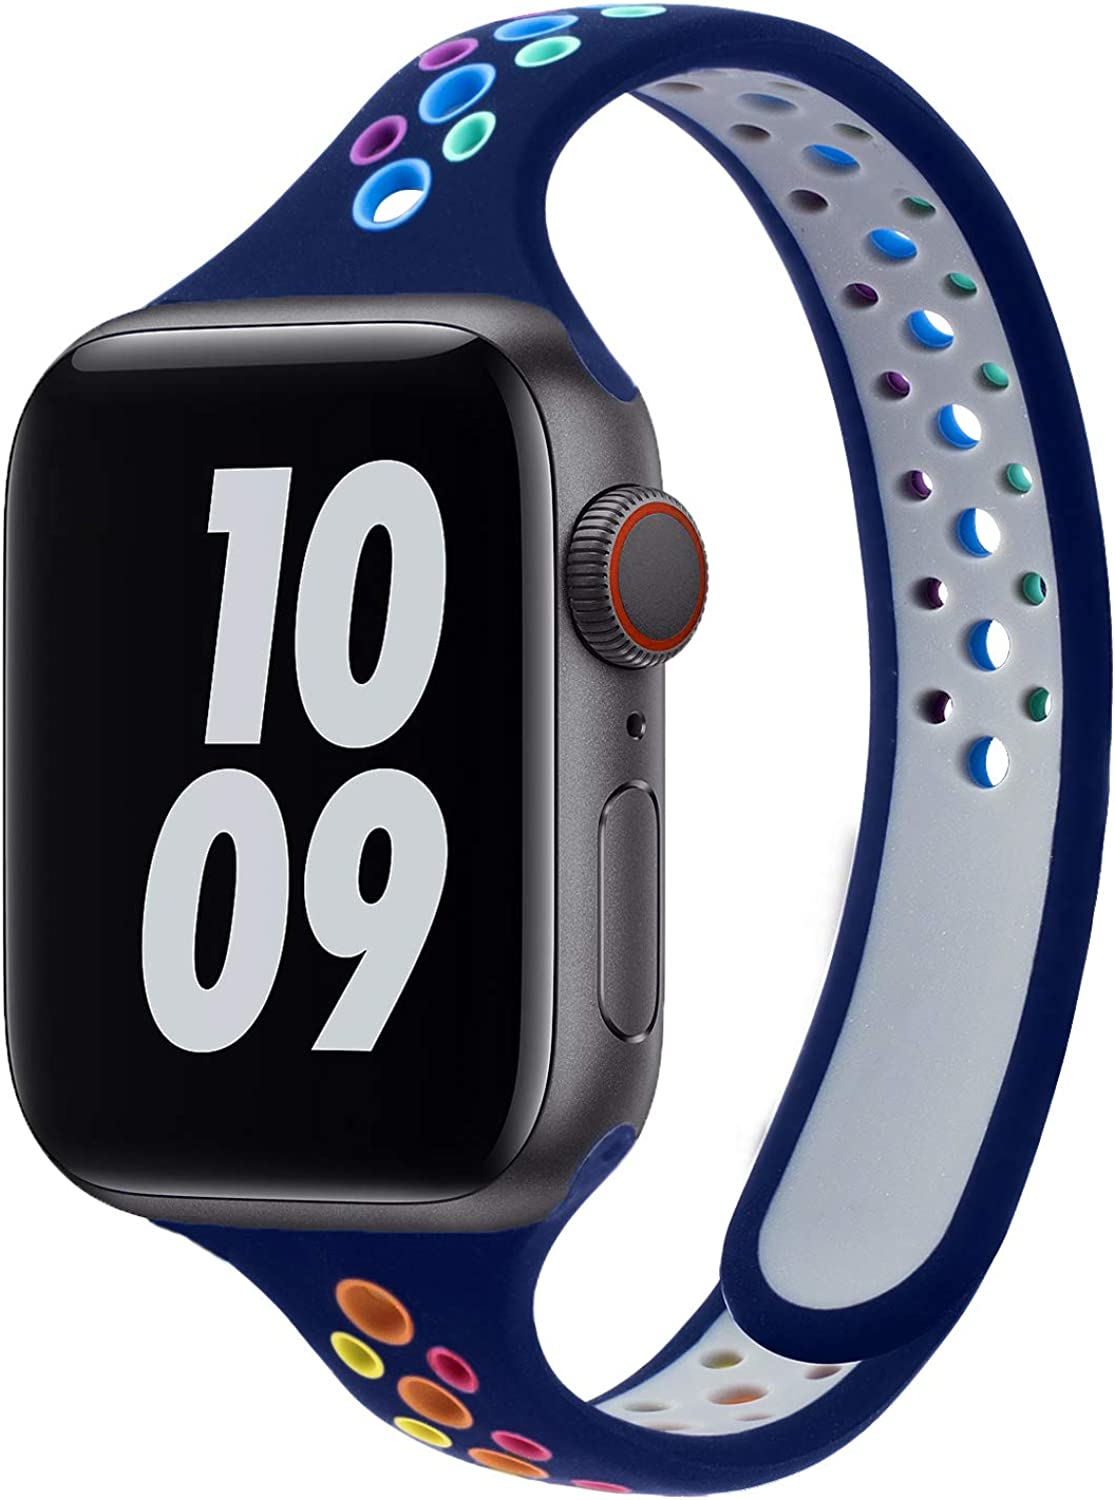 Plusyard Silicone Soft Breathable Sports Slim/Thin Colorful bands Compatible with Apple Watch 38/40mm 42/44mm, for iwatch Series 6/5/4/3/2/1/SE for Women…